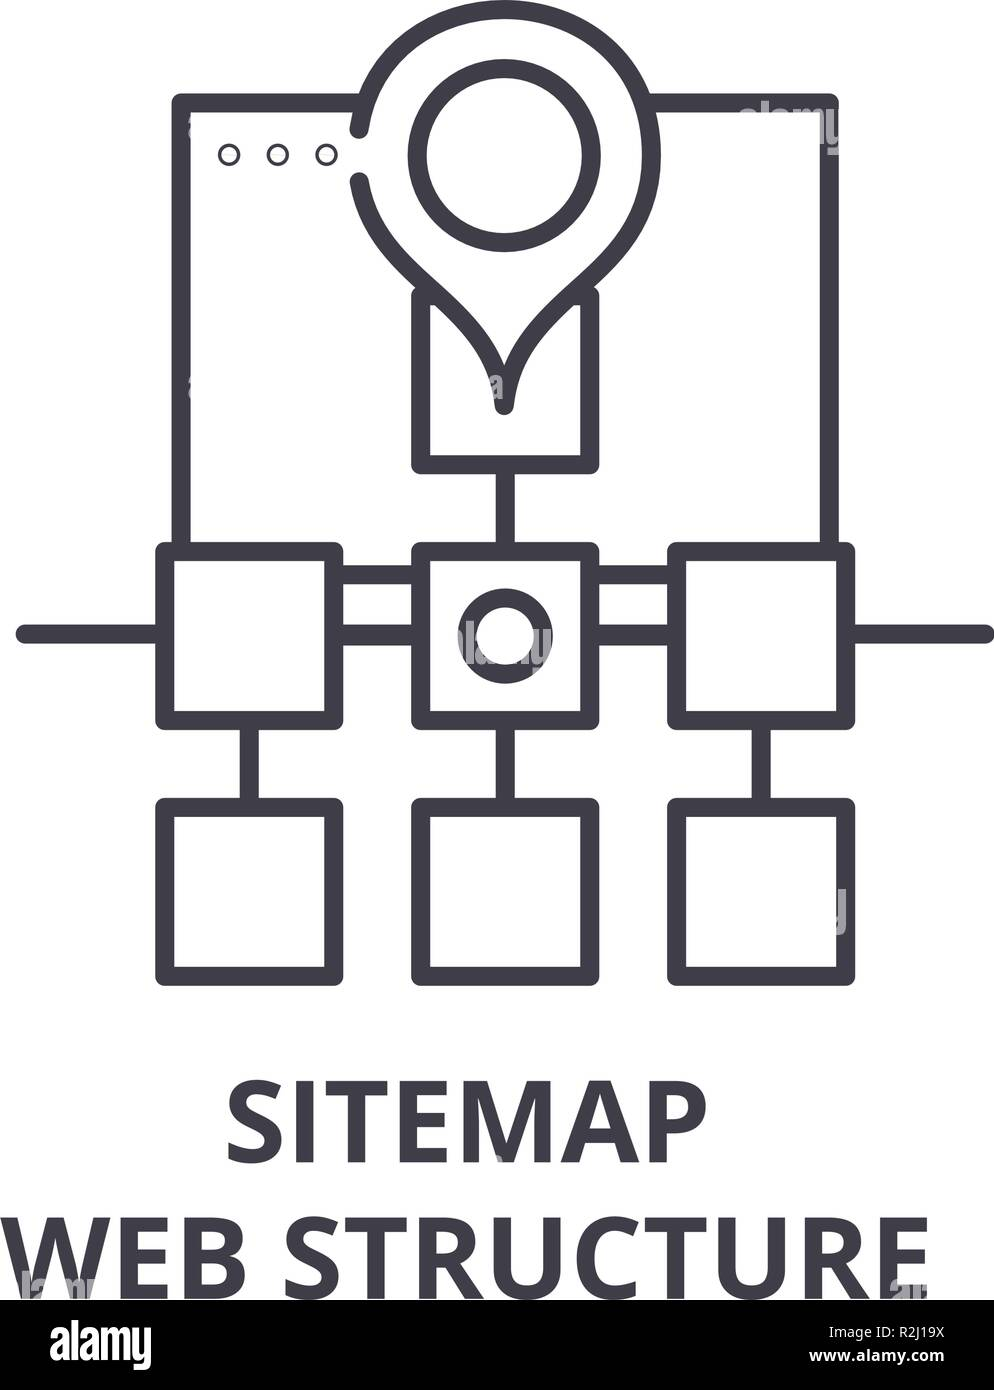 Sitemap web structure line icon concept. Sitemap web structure vector linear illustration, symbol, sign Stock Vector